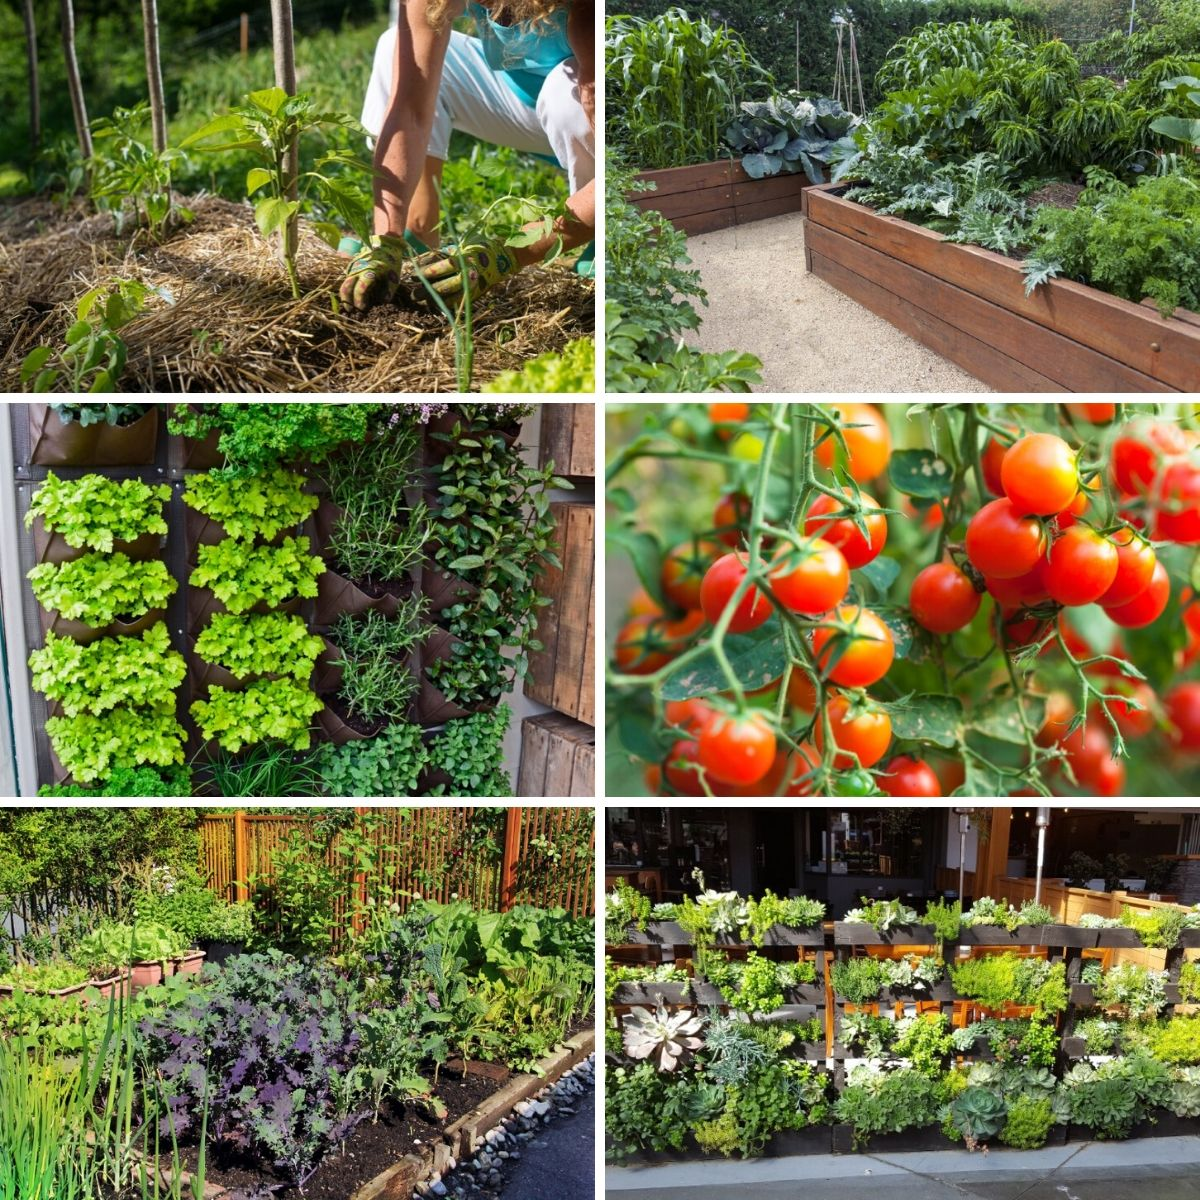 Photo collage featuring photos from the high yield gardening tips from the article.